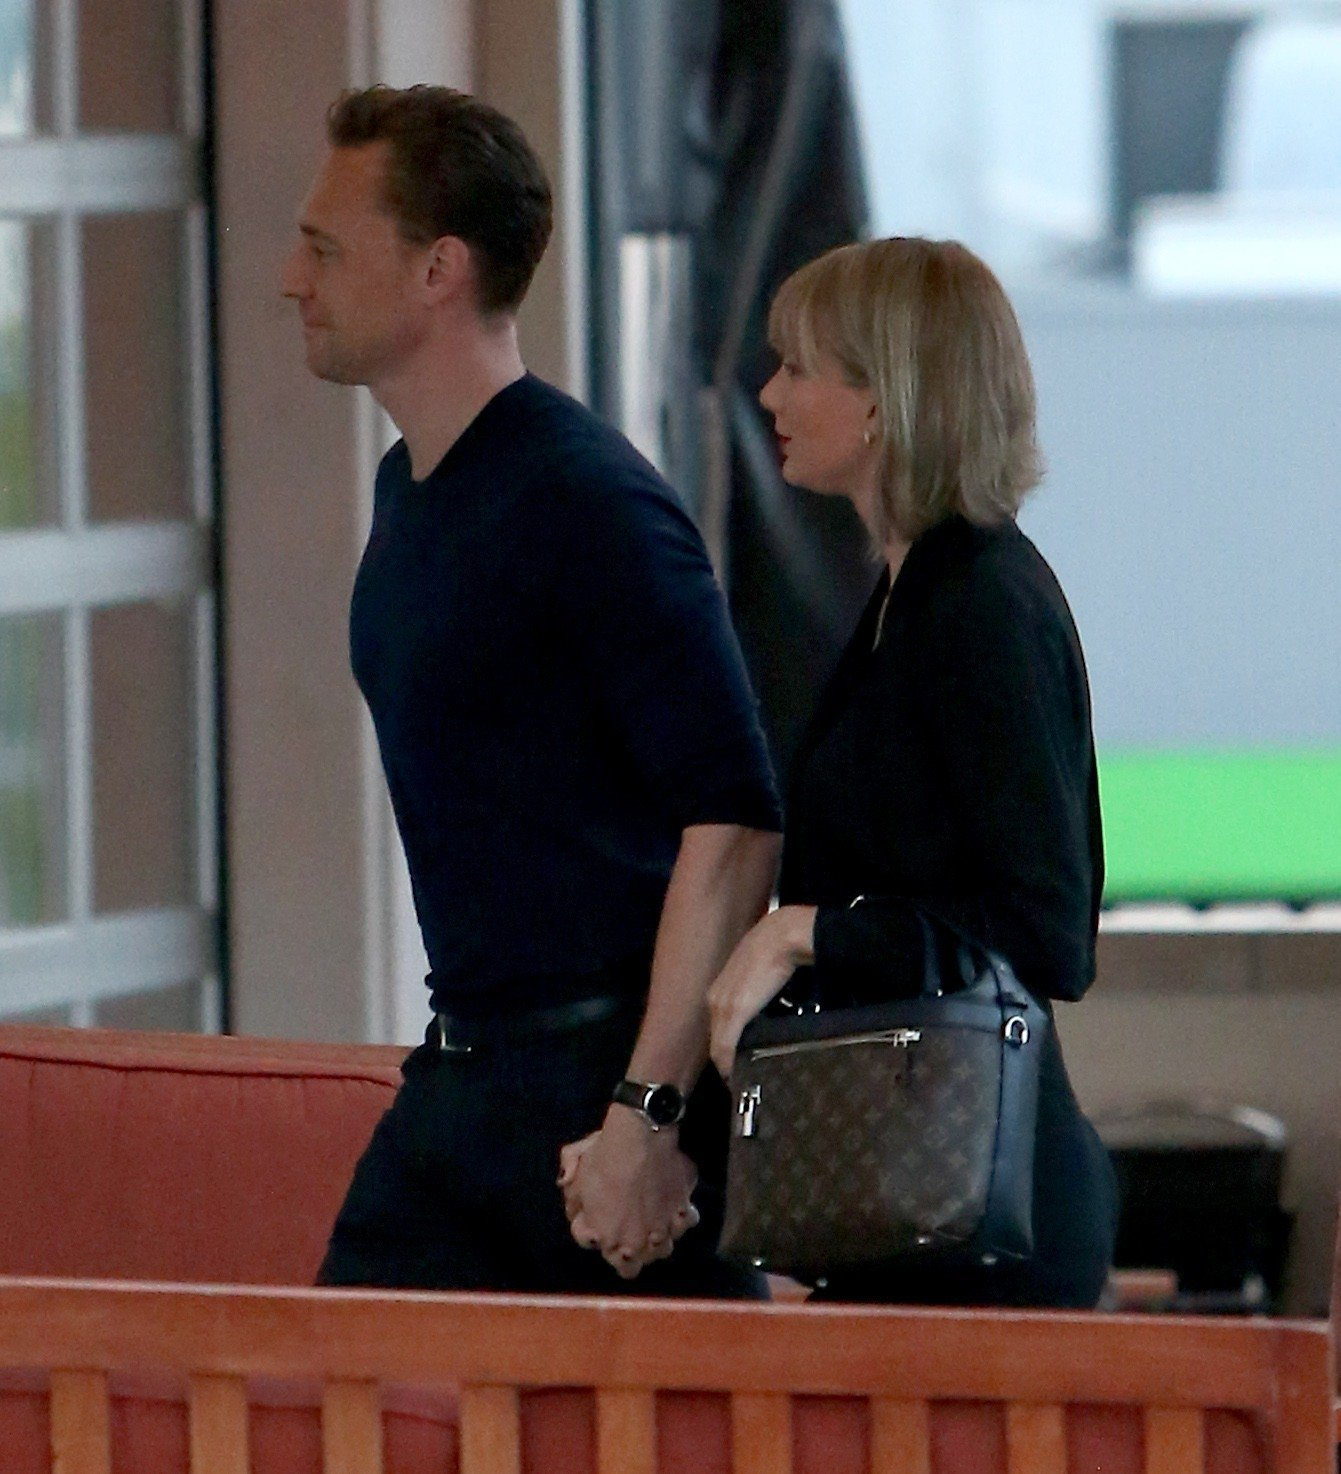 Now Taylor Swift meets Tom Hiddleston's mum as the loved-up pair touch down in Essex